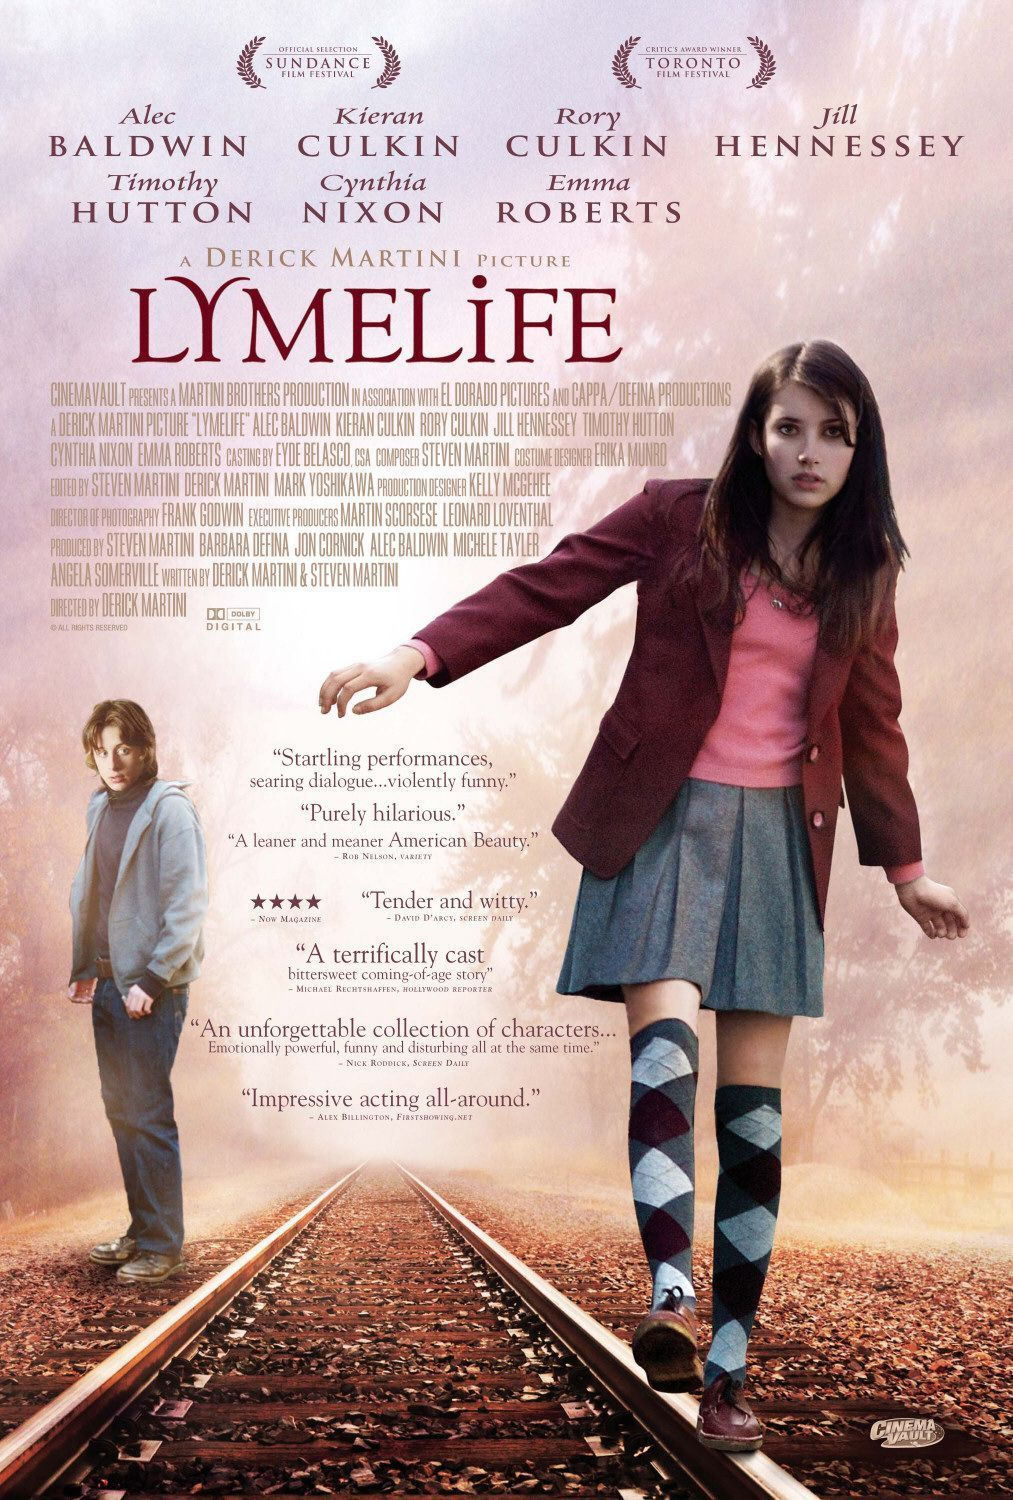 Lymelife Movie Poster 2 - Emma Roberts Photo (15281105 ...